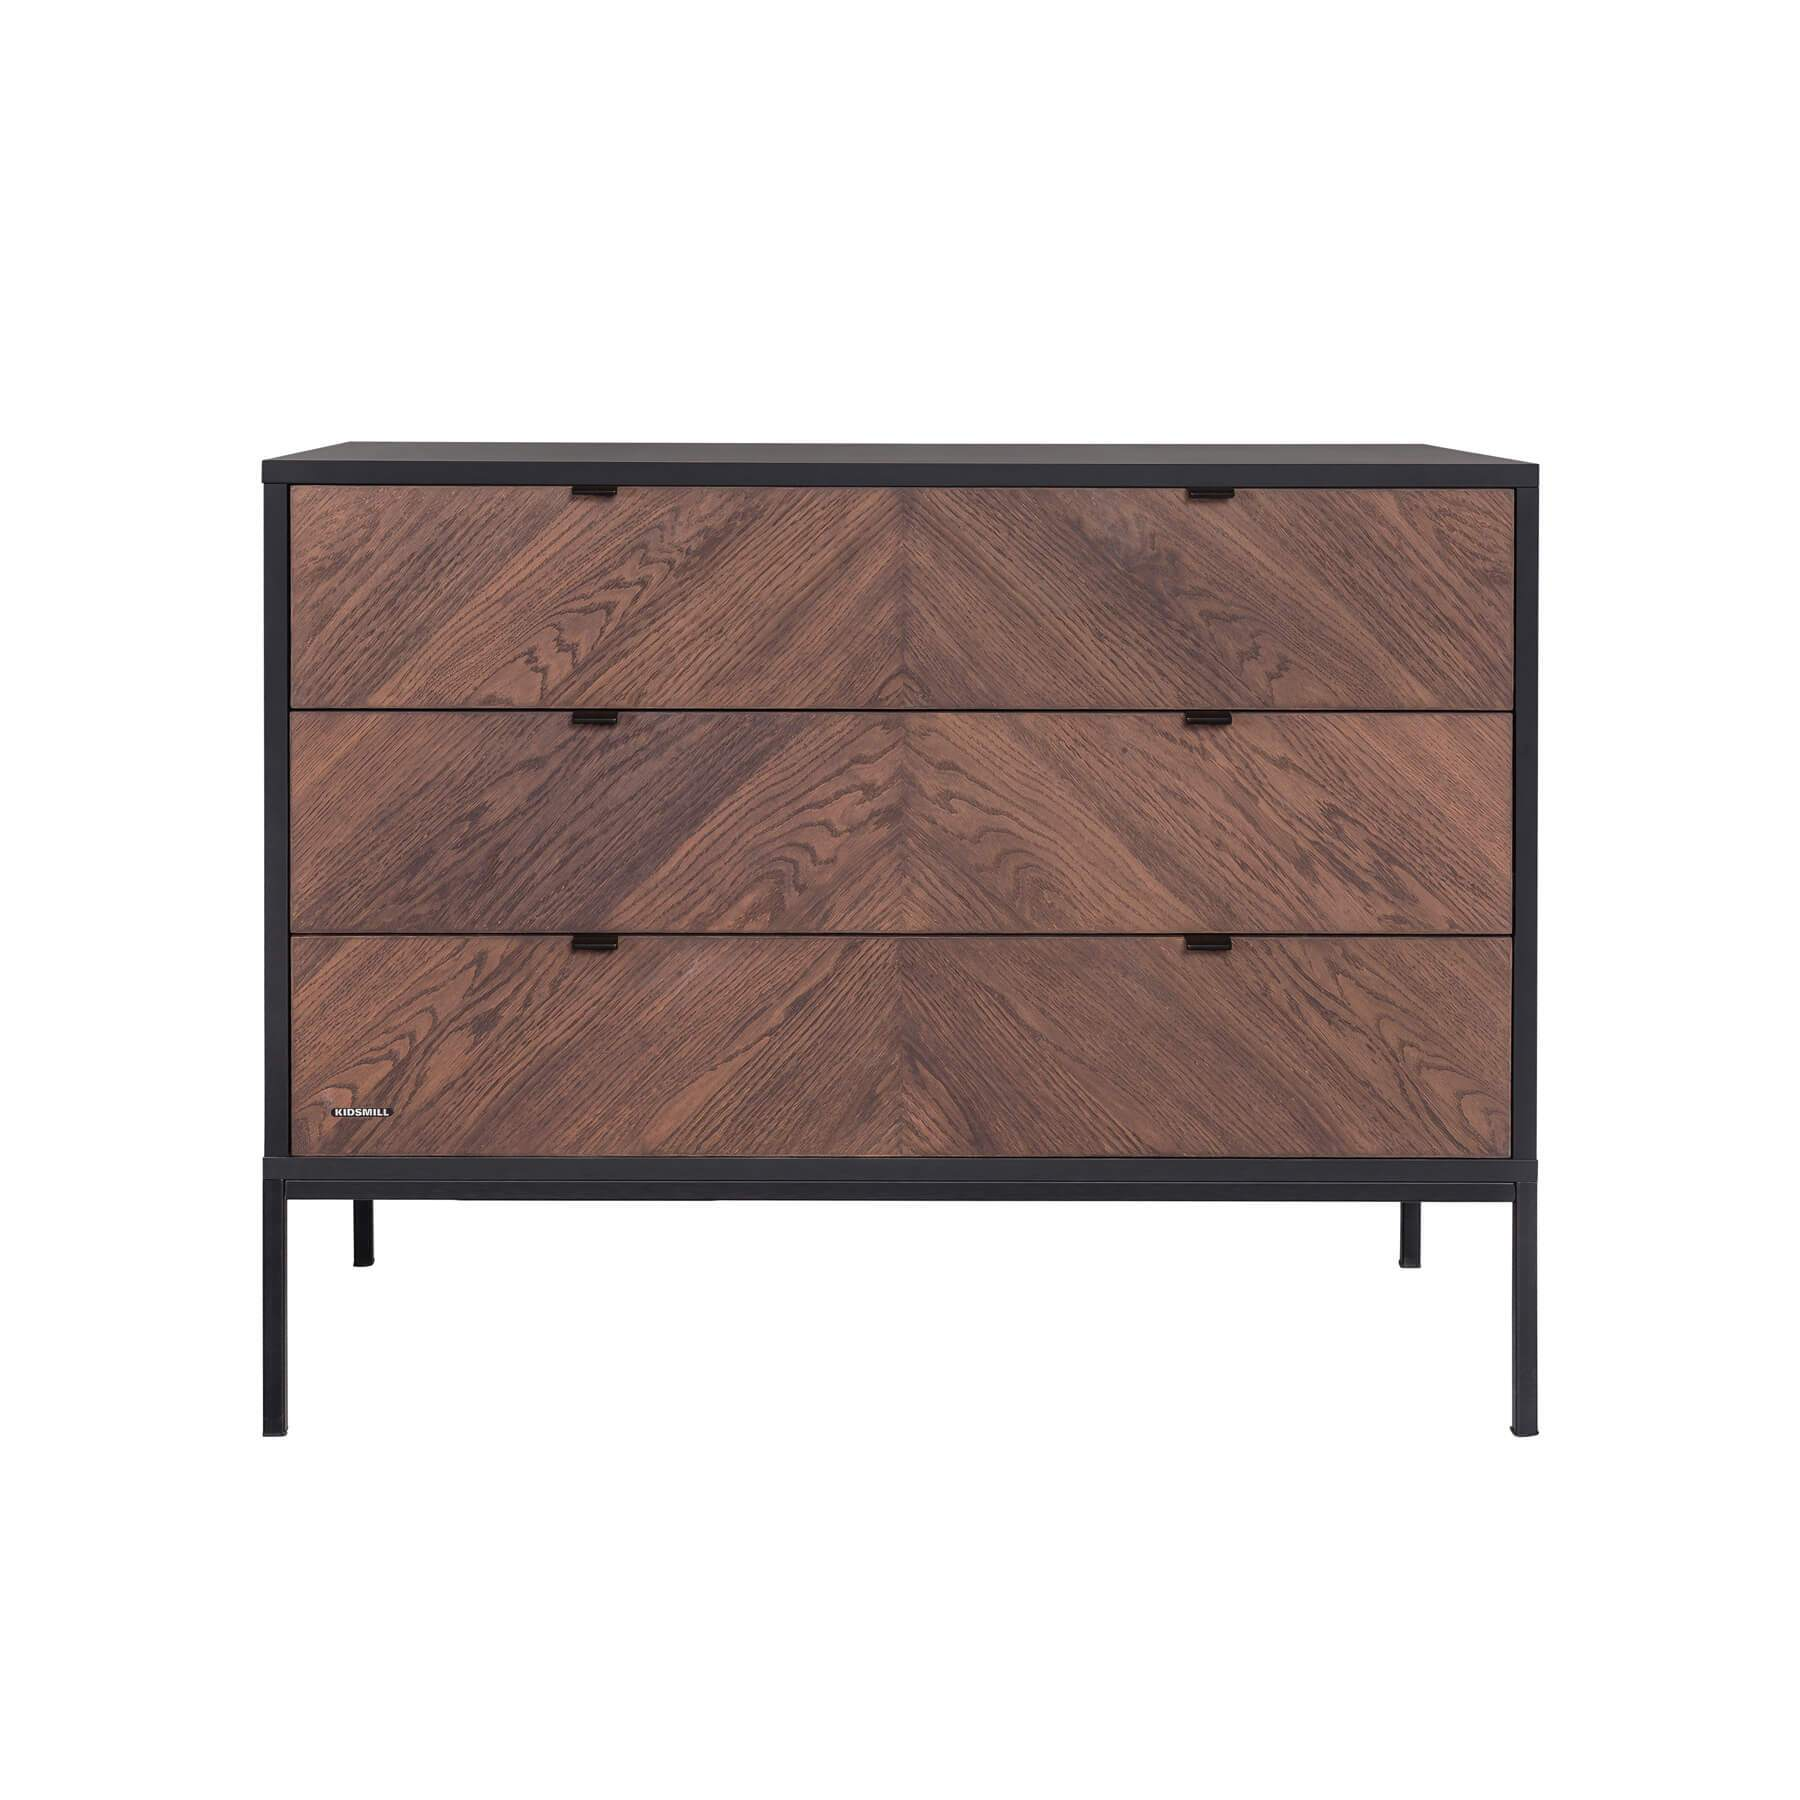 KIDSMILL Vince Large Chest - Walnut